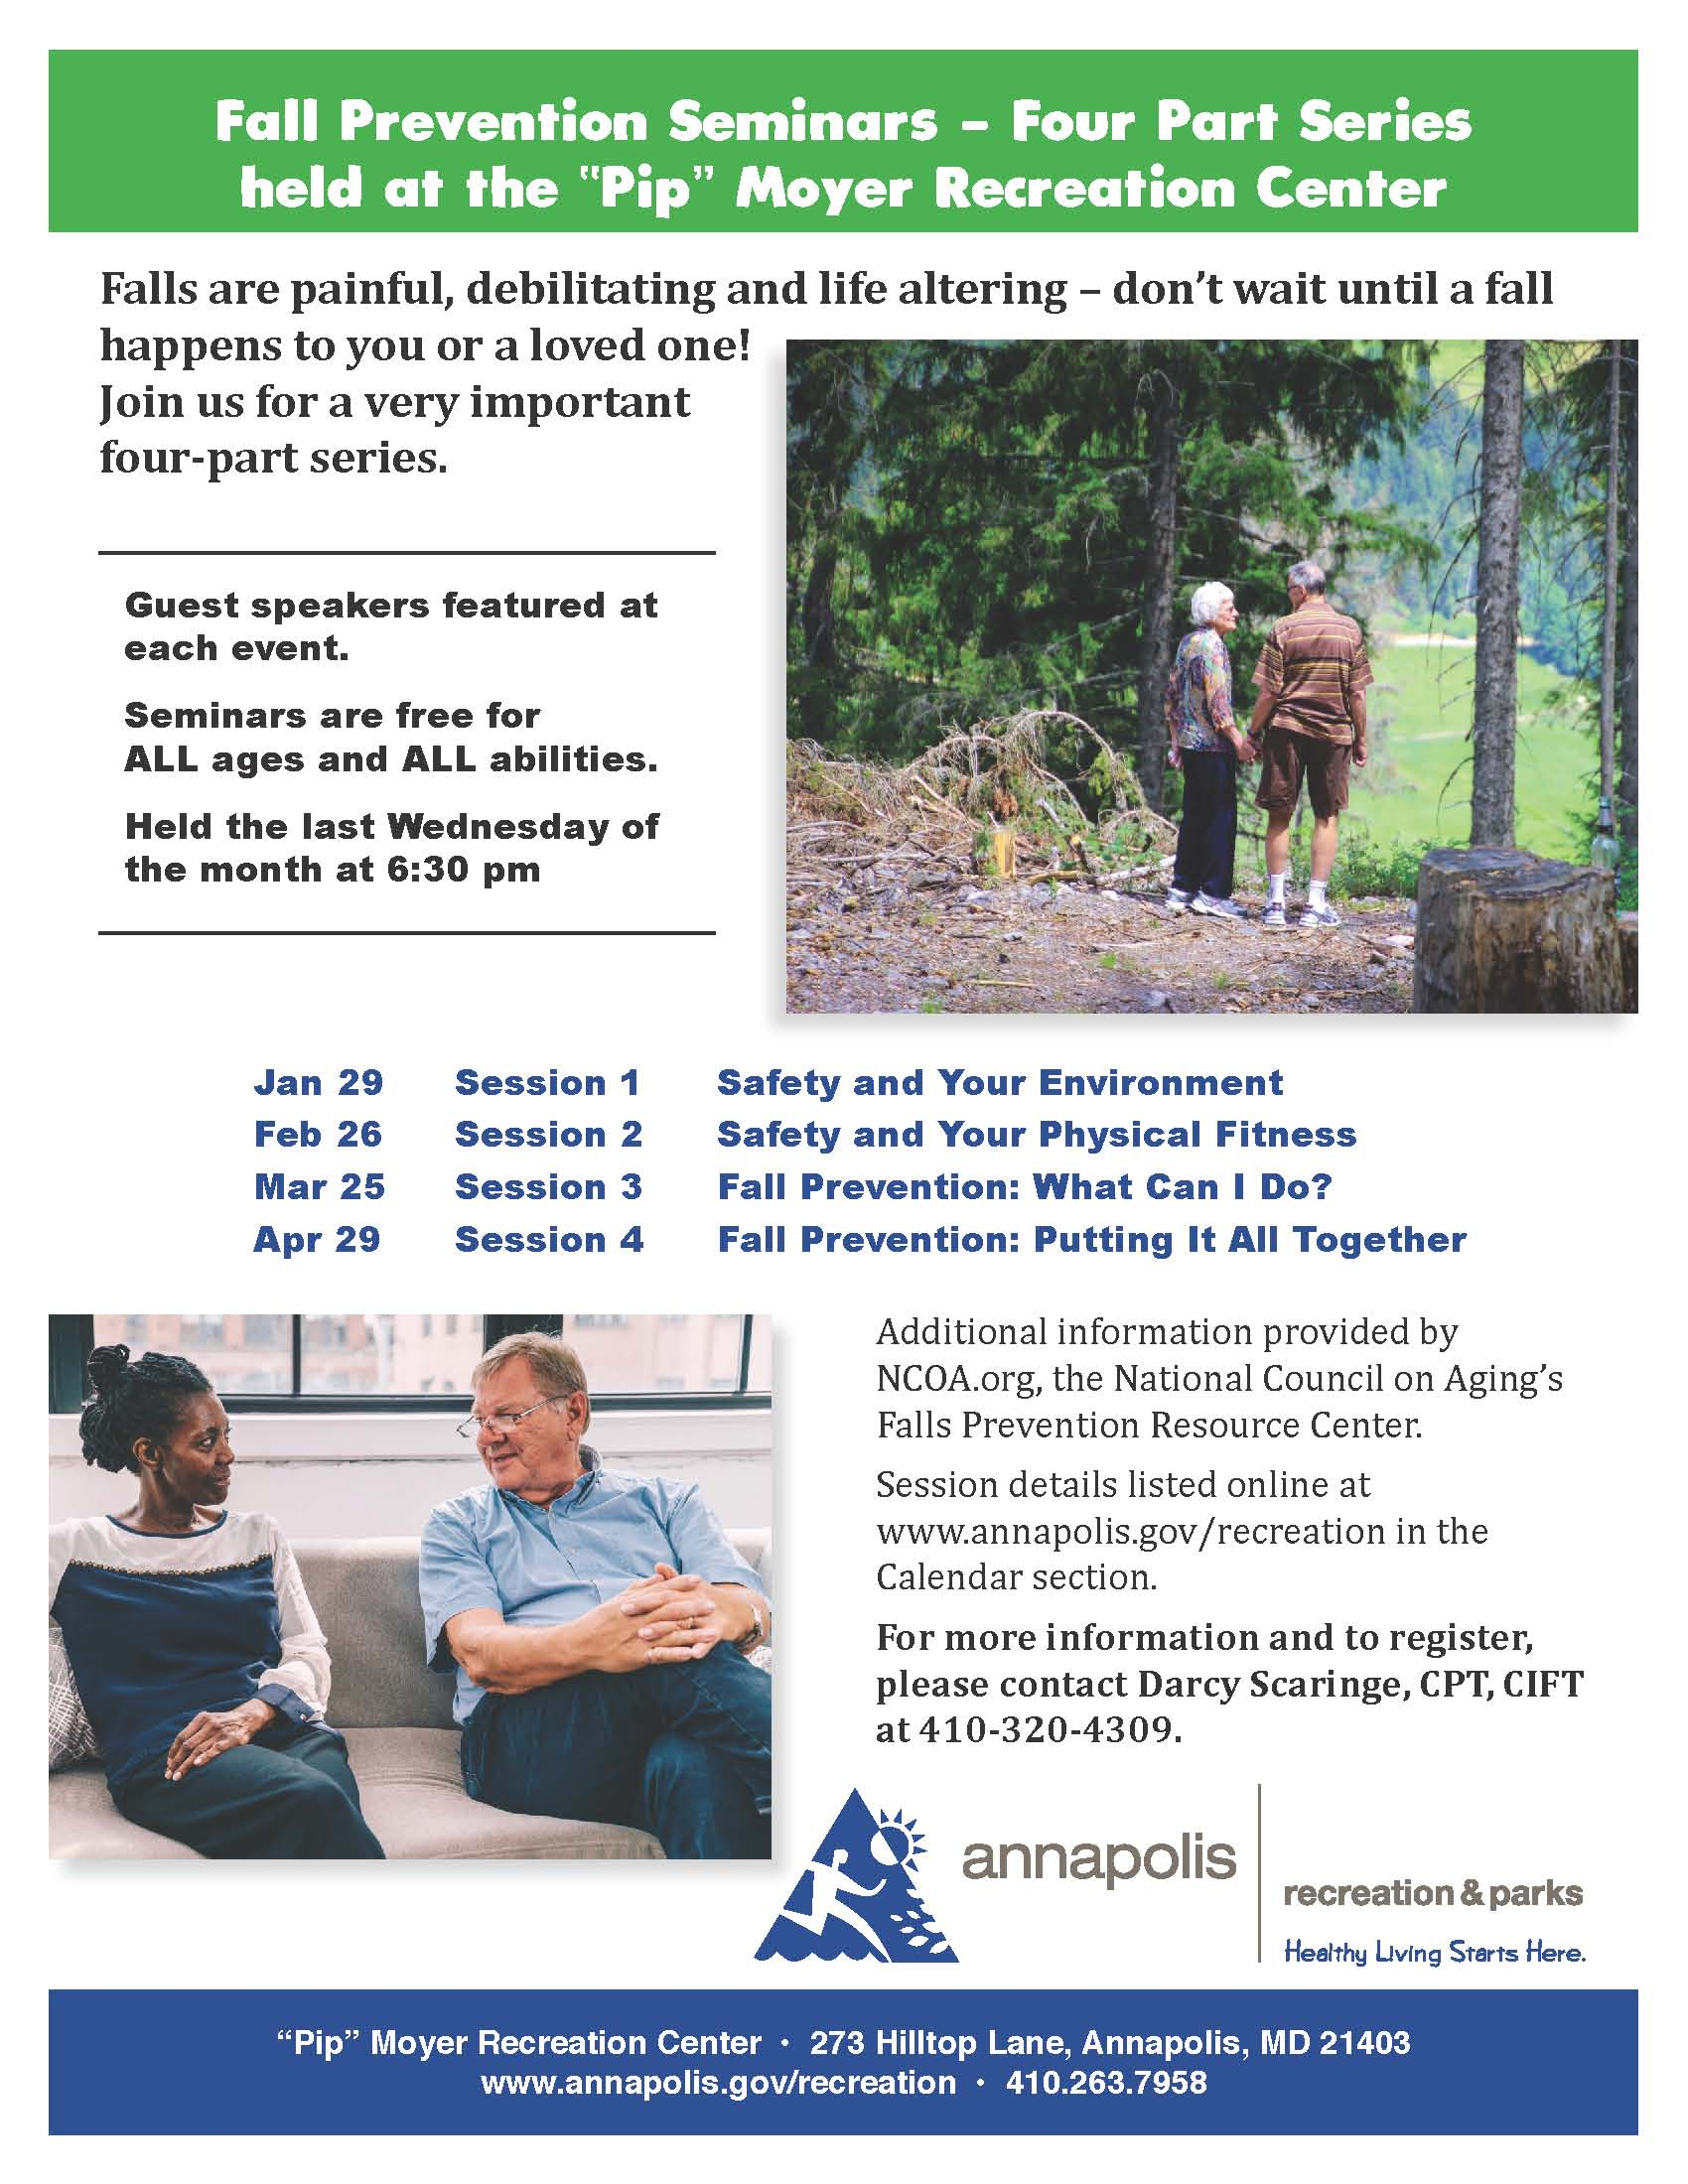 Fall Prevention Four-Part Seminar Series 2020 flyer